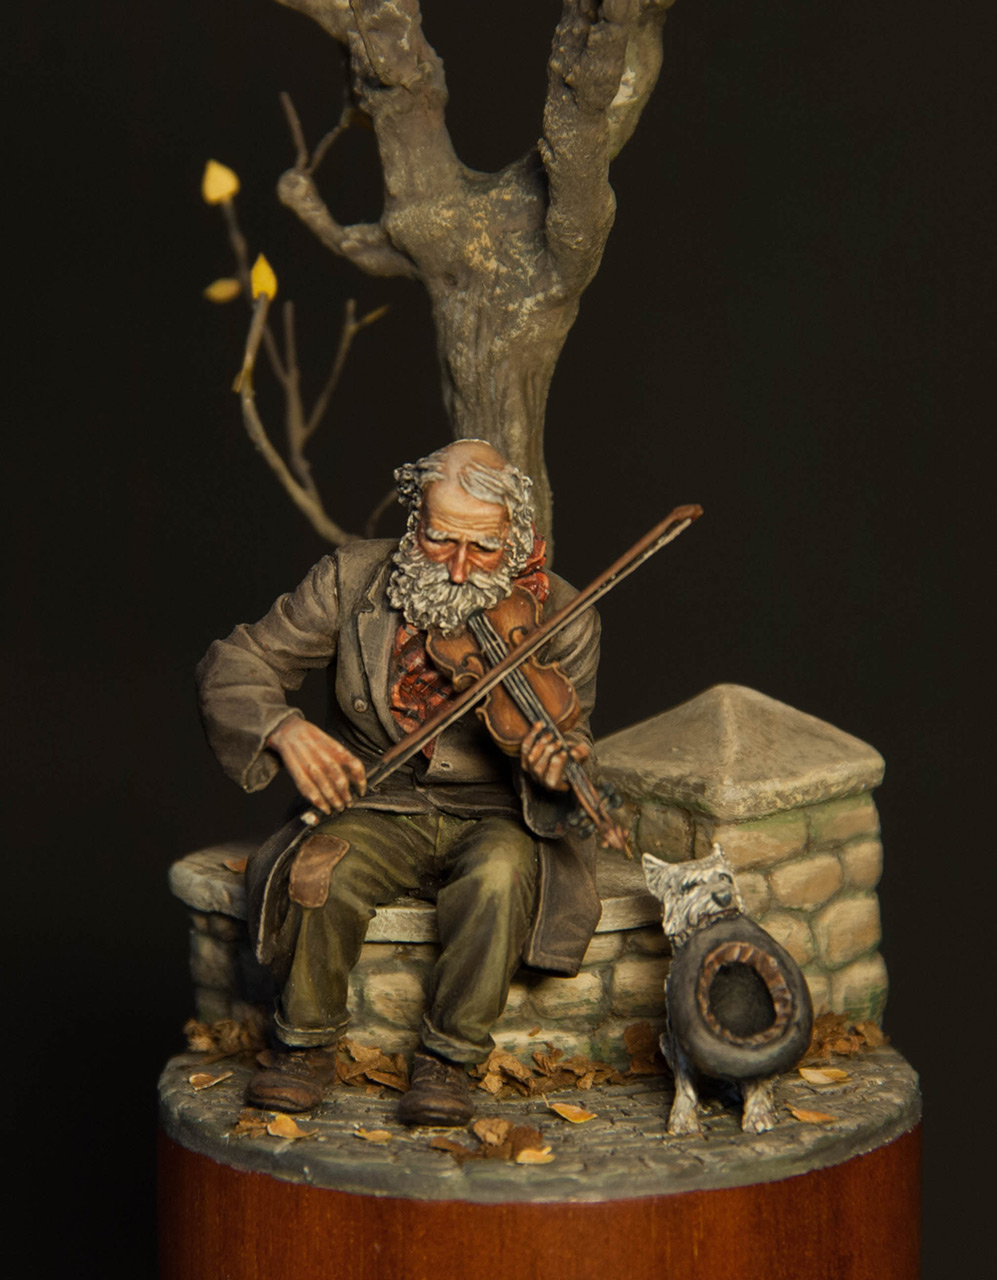 Dioramas and Vignettes: The old fiddler, photo #1